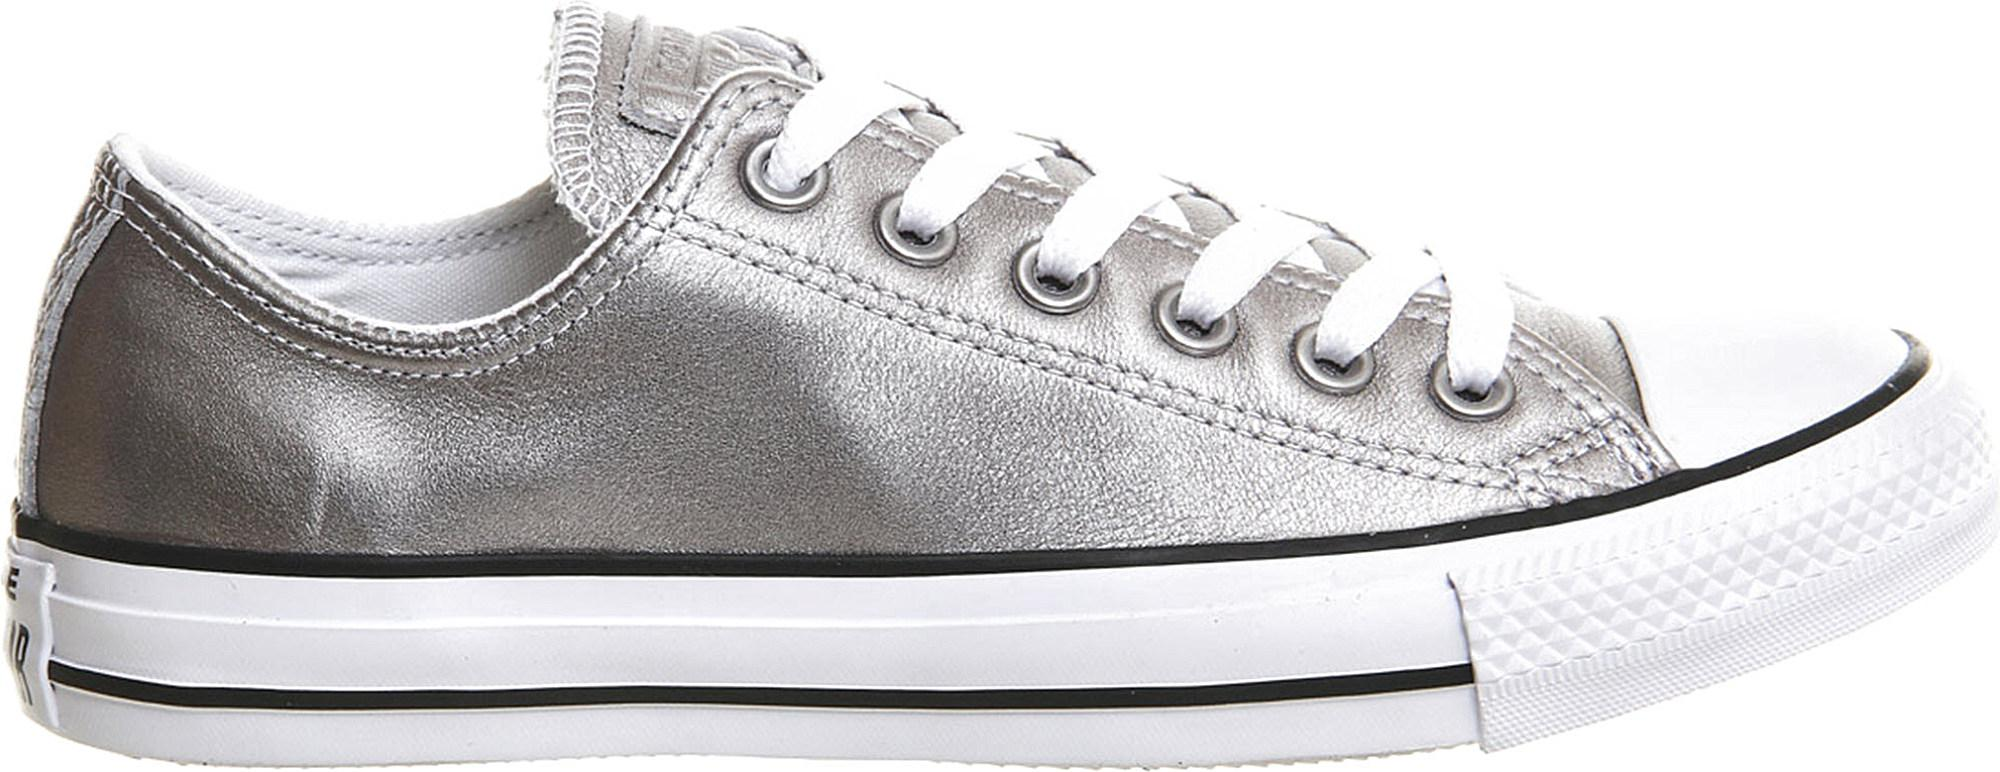 0122f1fc012db1 Lyst - Converse Allstar Low-top Leather Trainers in Metallic